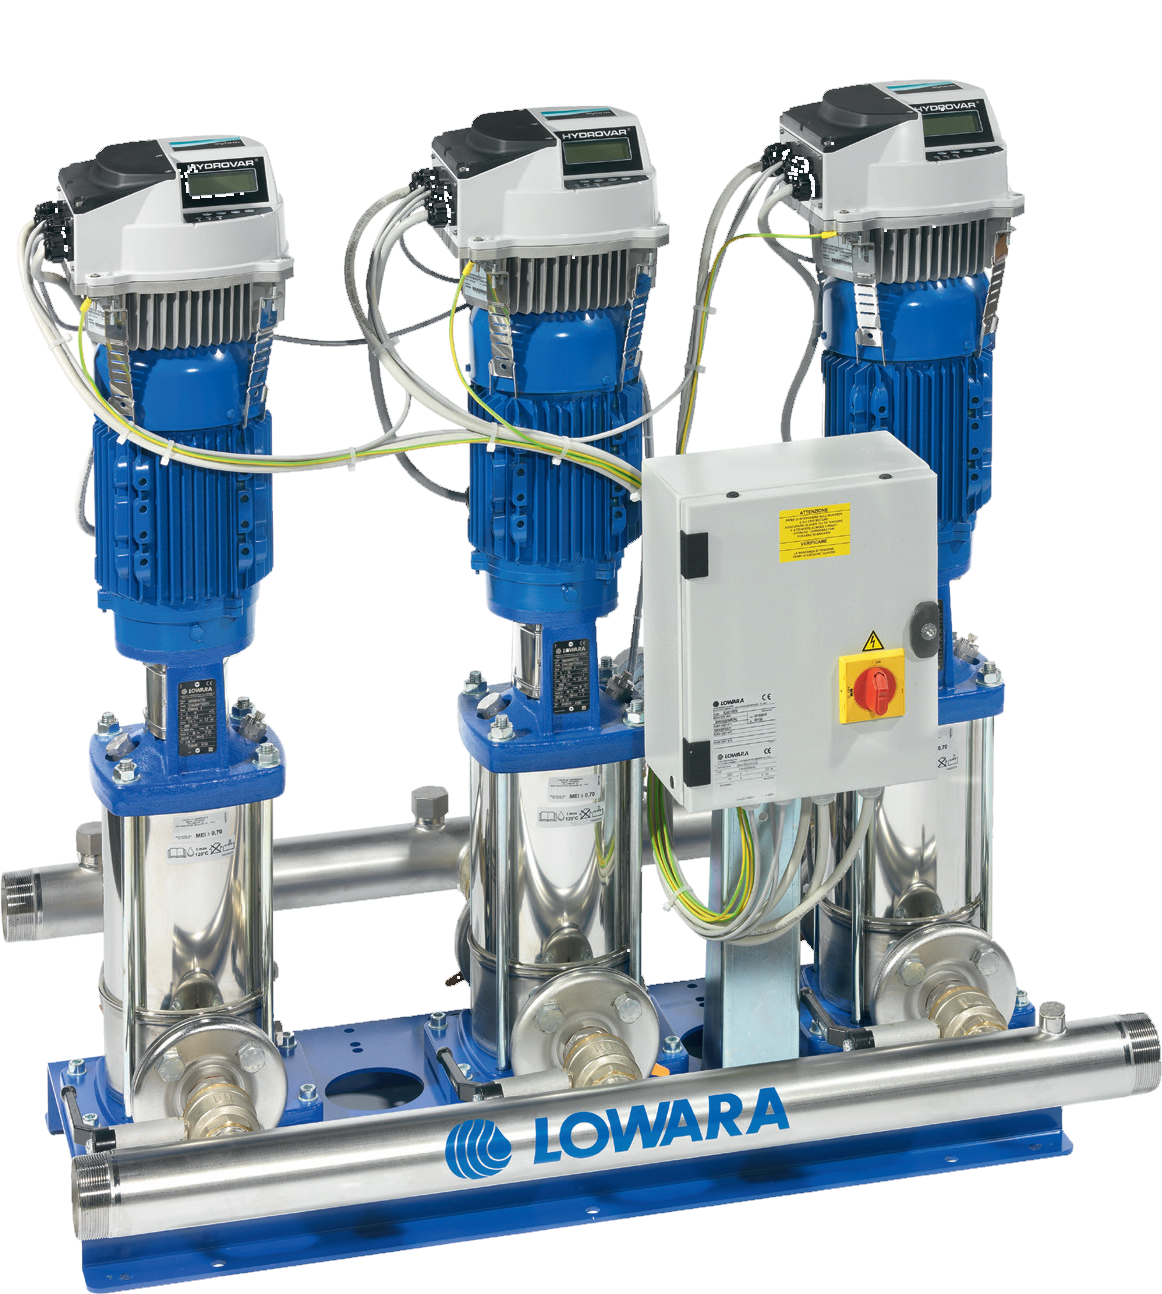 Cold Water Booster Sets Wilo Pump Wiring Diagram Lowara Fast Lane Variable Speed Drive